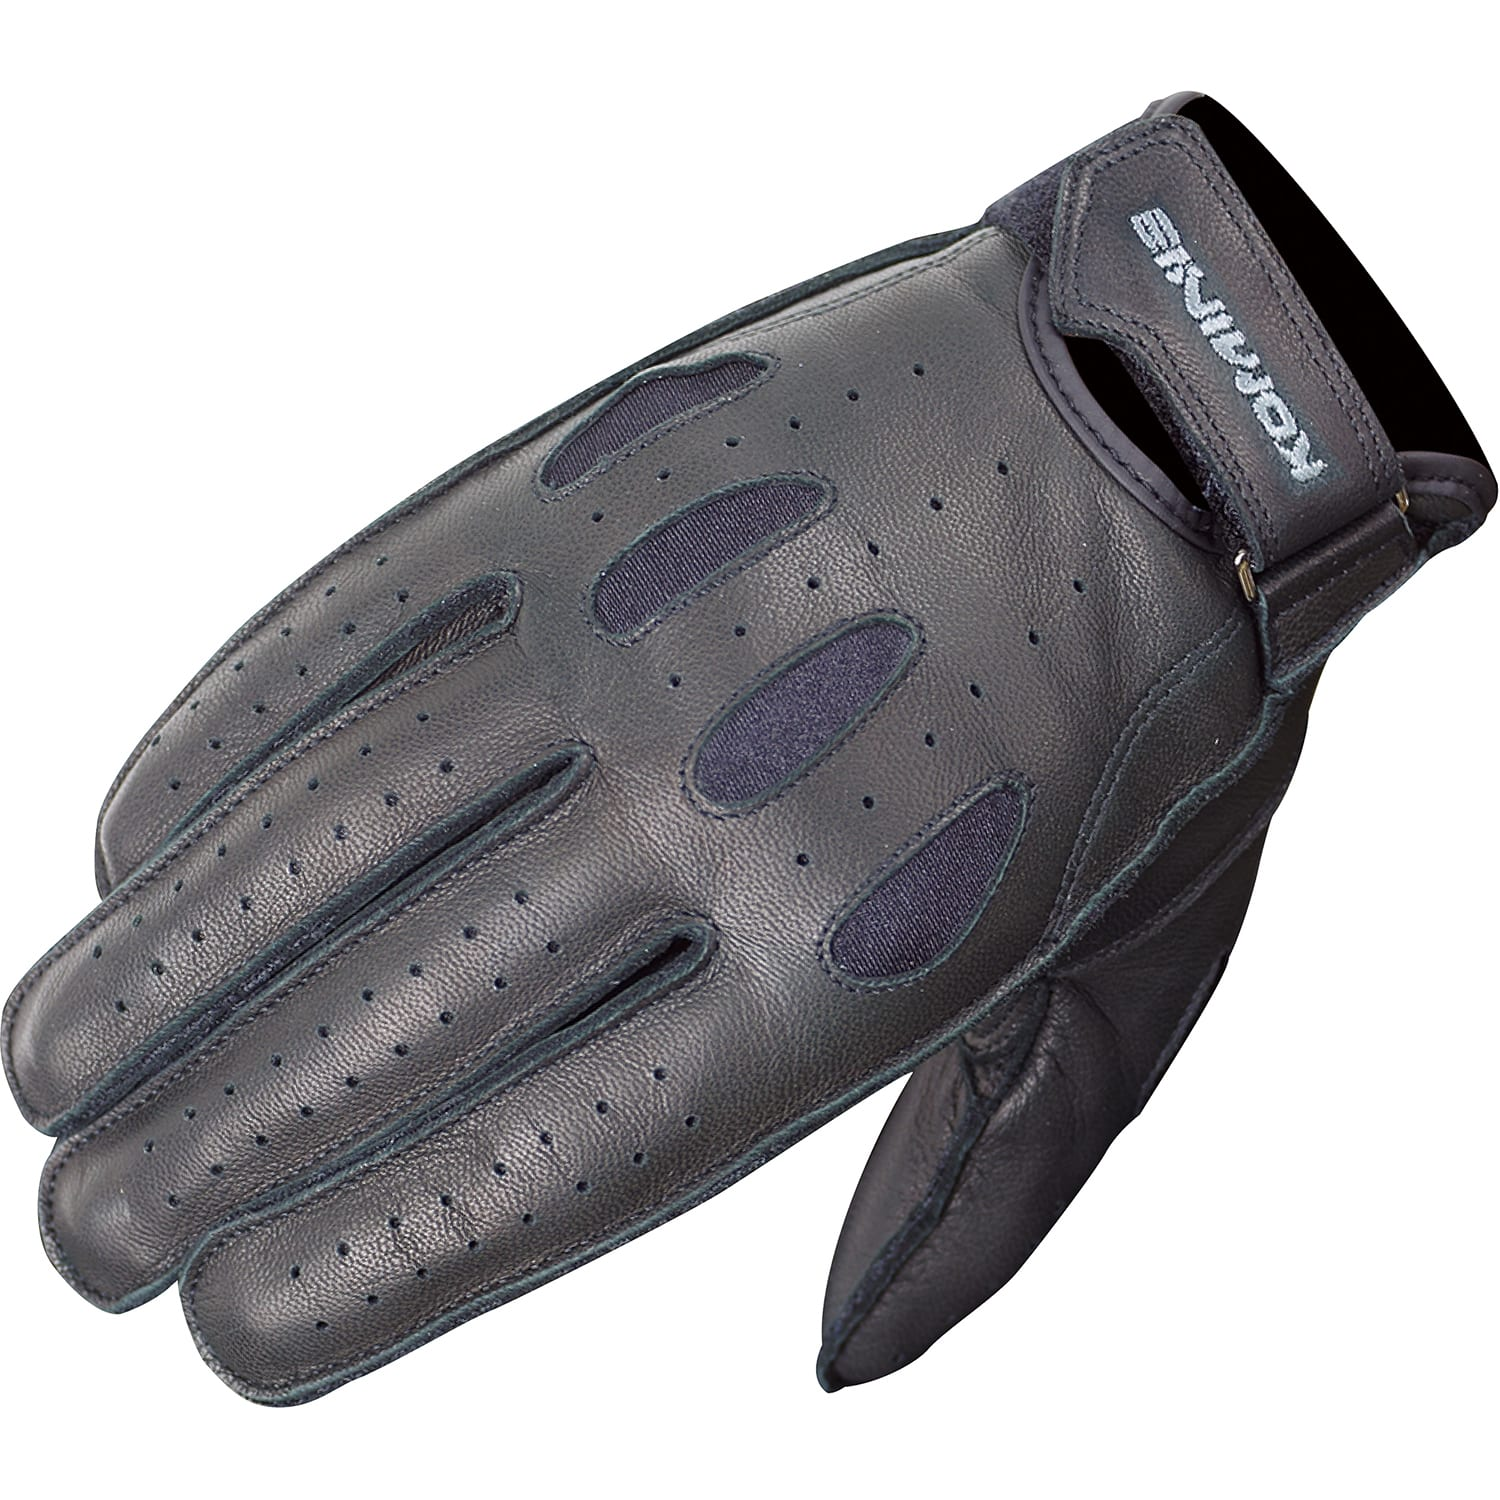 Short Summer Real Leather Motorbike Gloves Knuckle Shell Protection Black